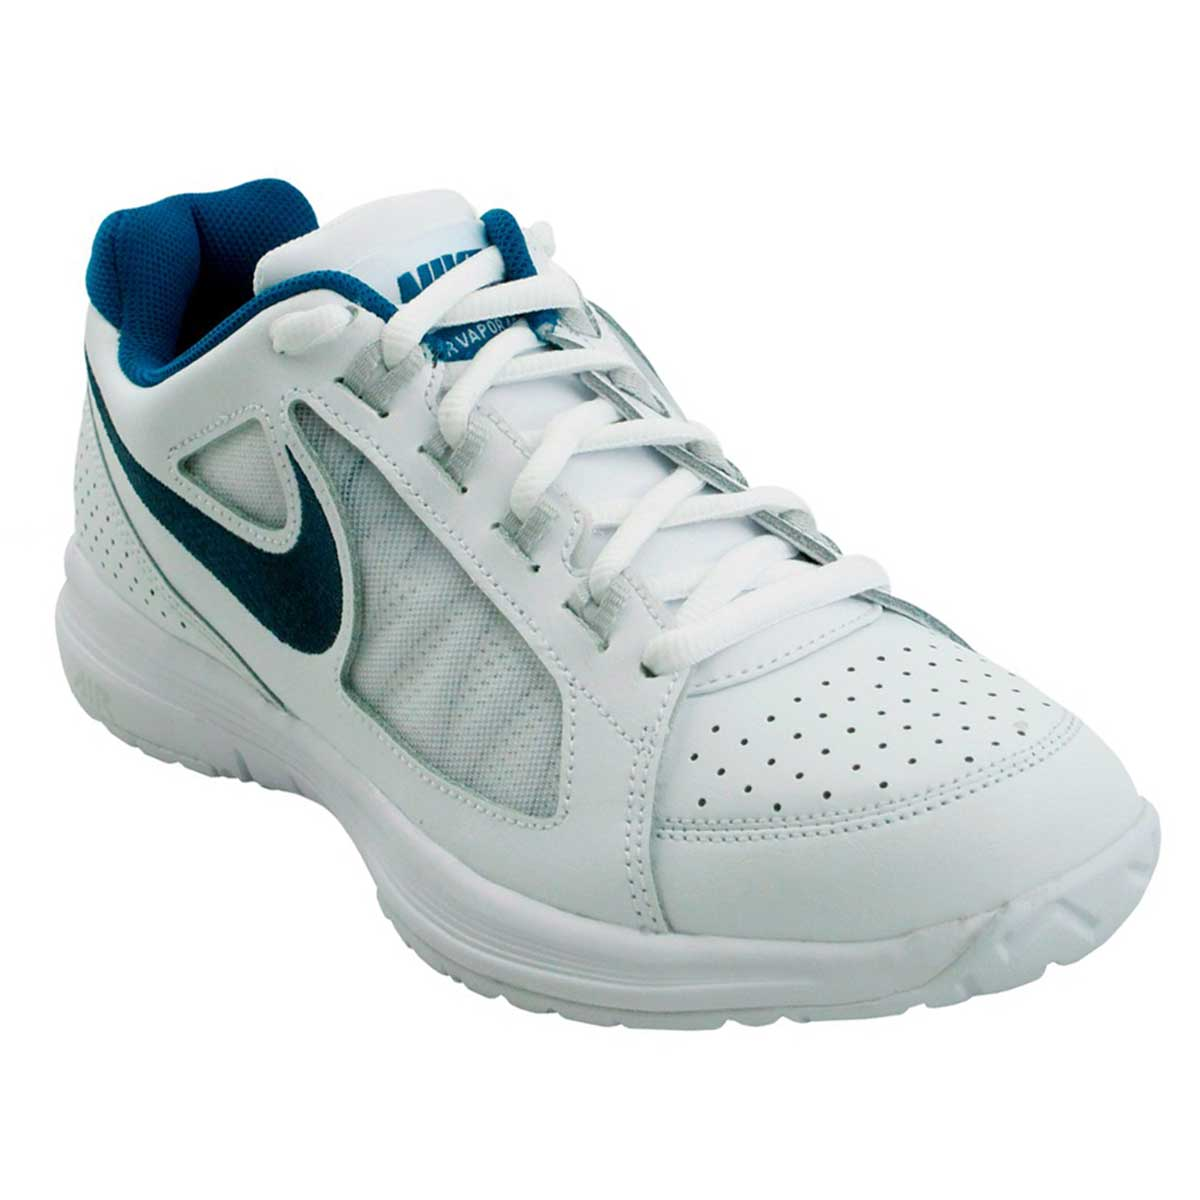 15a75b80083f9f Buy Nike Air Vapor Ace Tennis Shoes Online in India